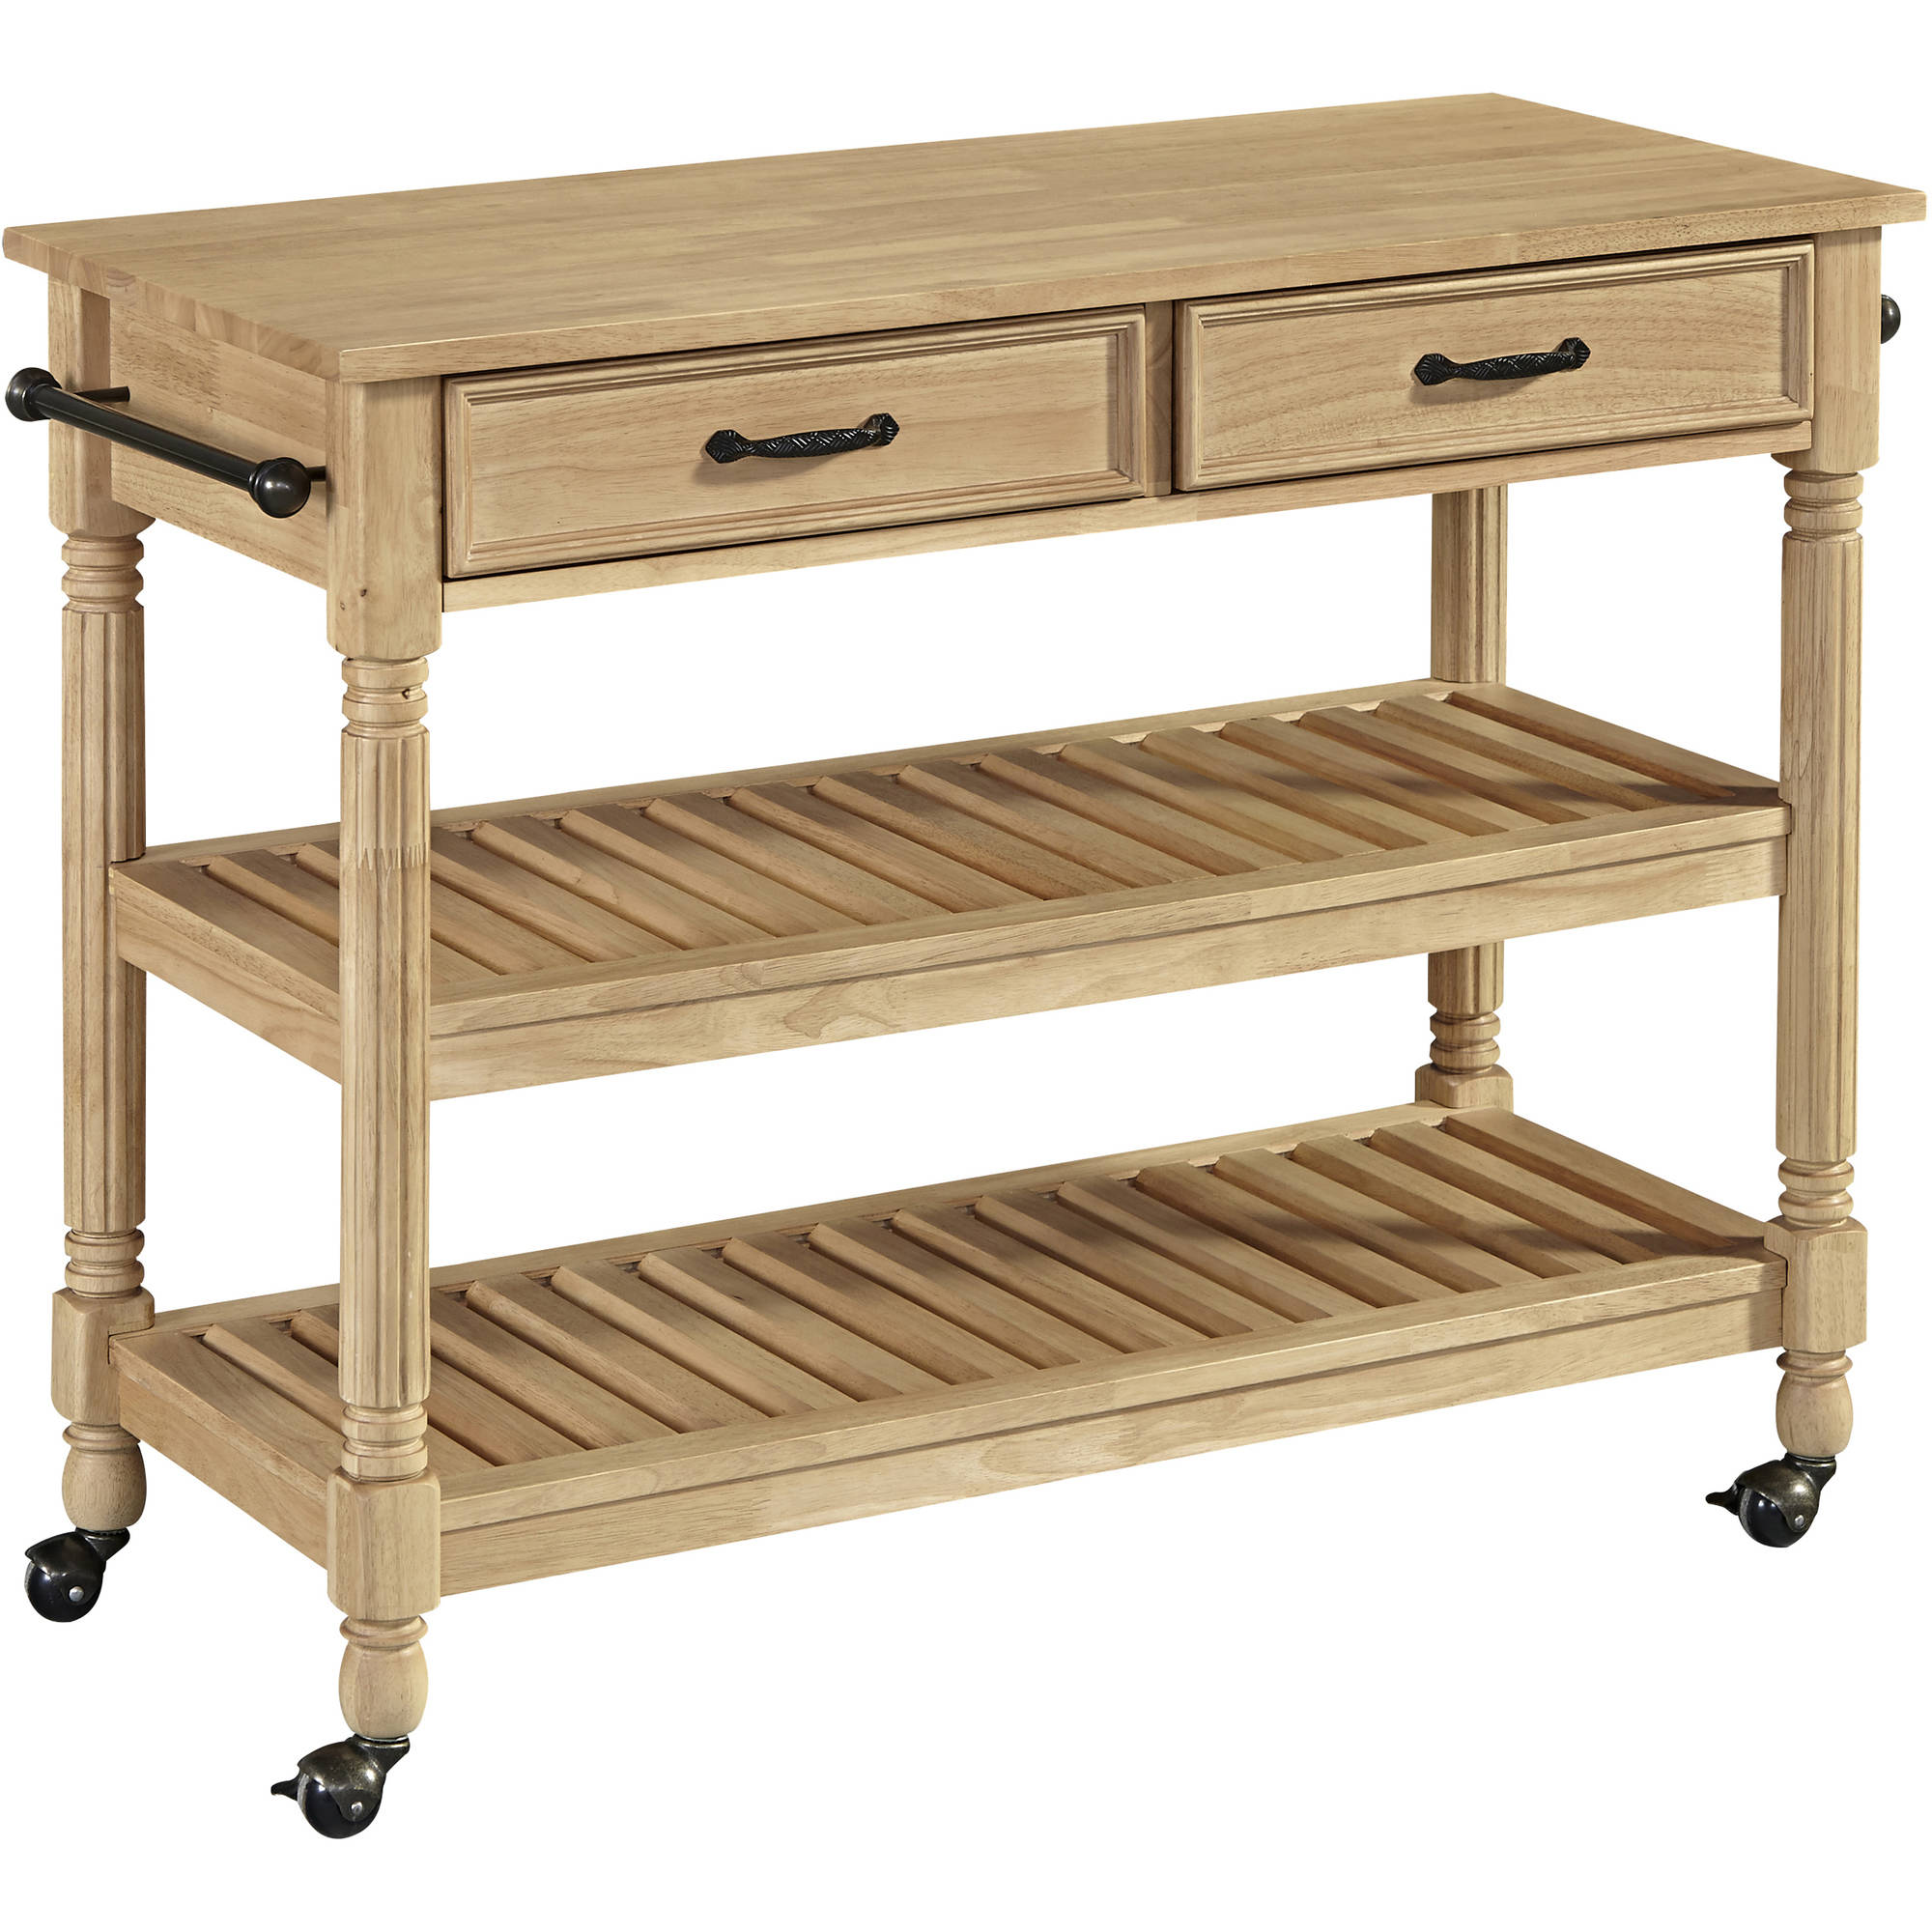 savannah natural kitchen cart - walmart